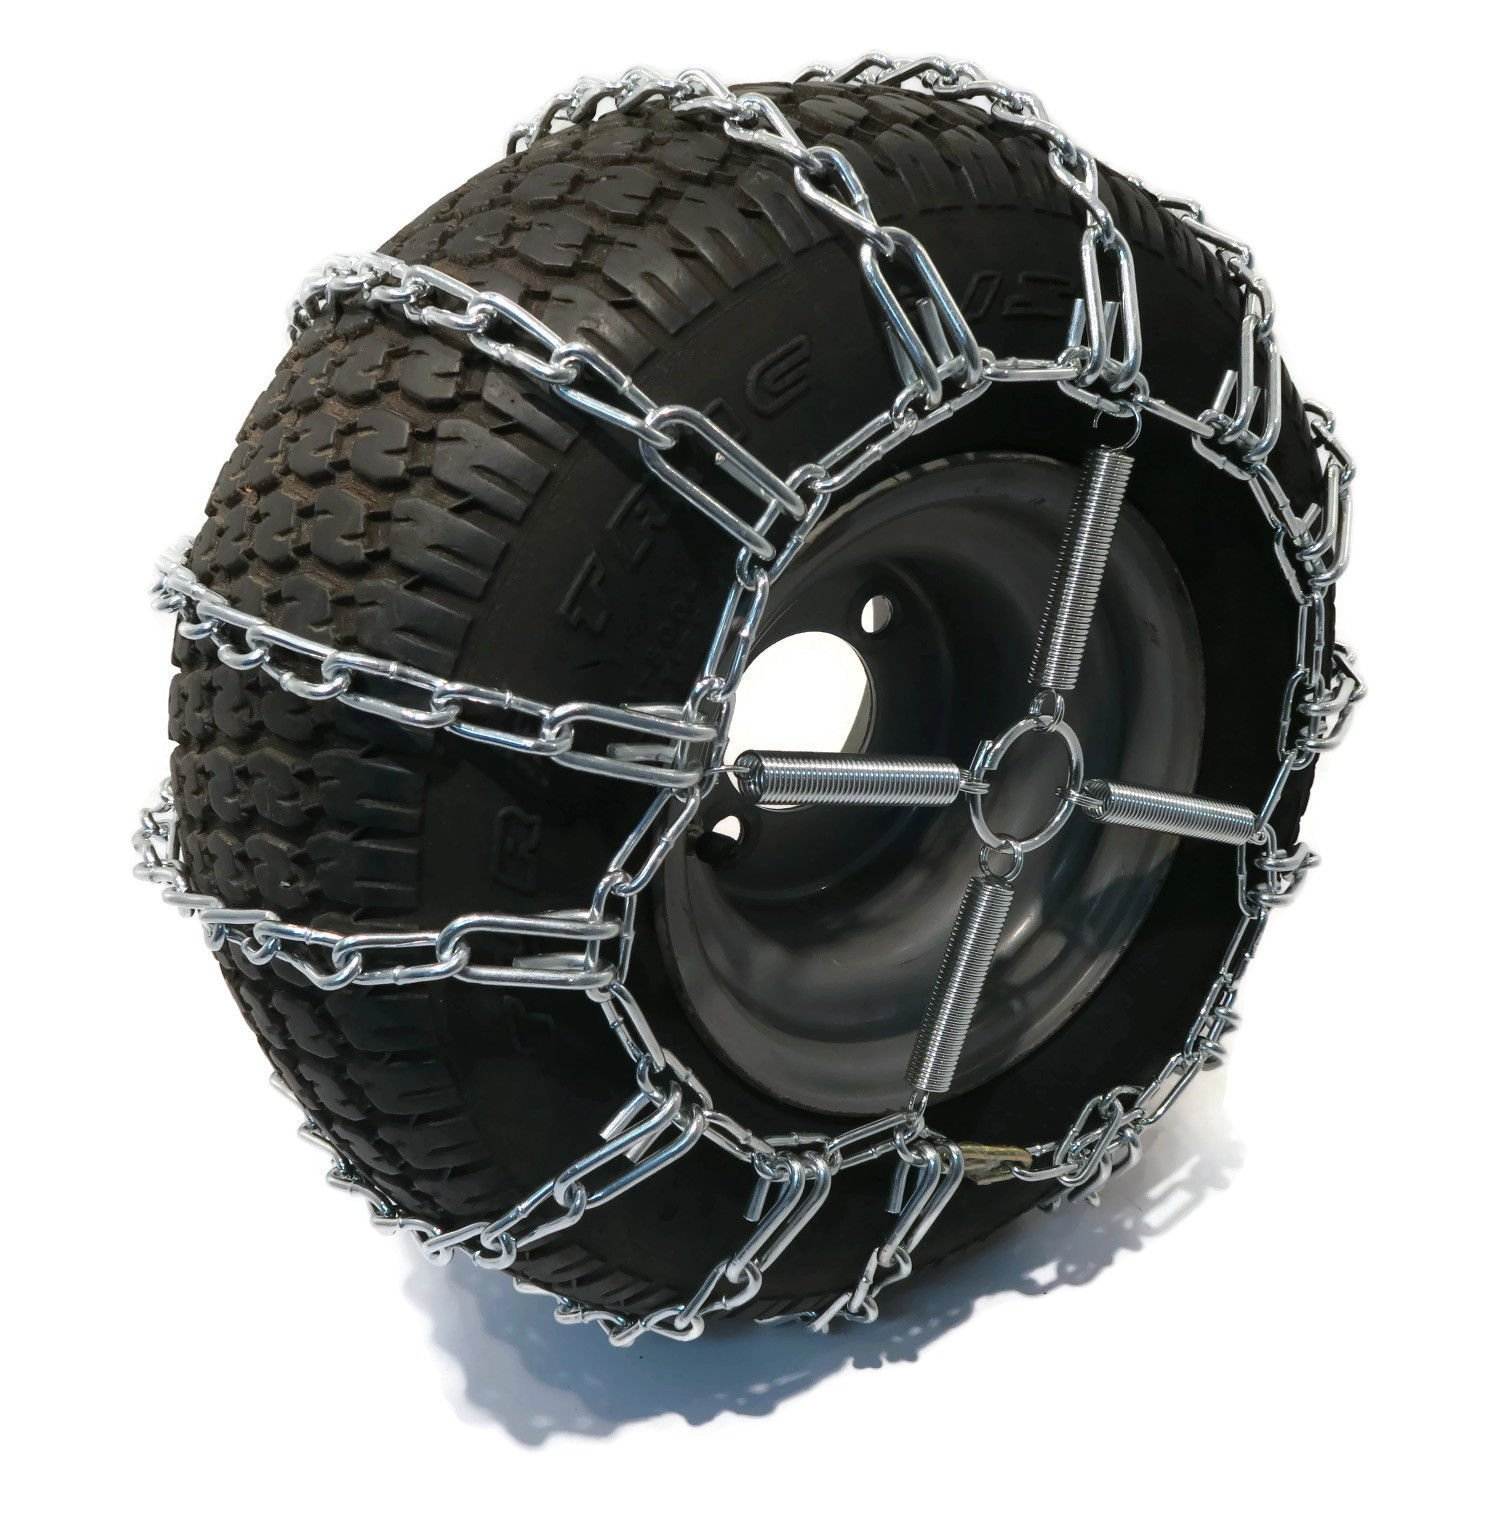 The ROP Shop 2 Link TIRE Chains & TENSIONERS 23x10.5x12 for MTD Cub Cadet Lawn Mower Tractor by The ROP Shop (Image #2)